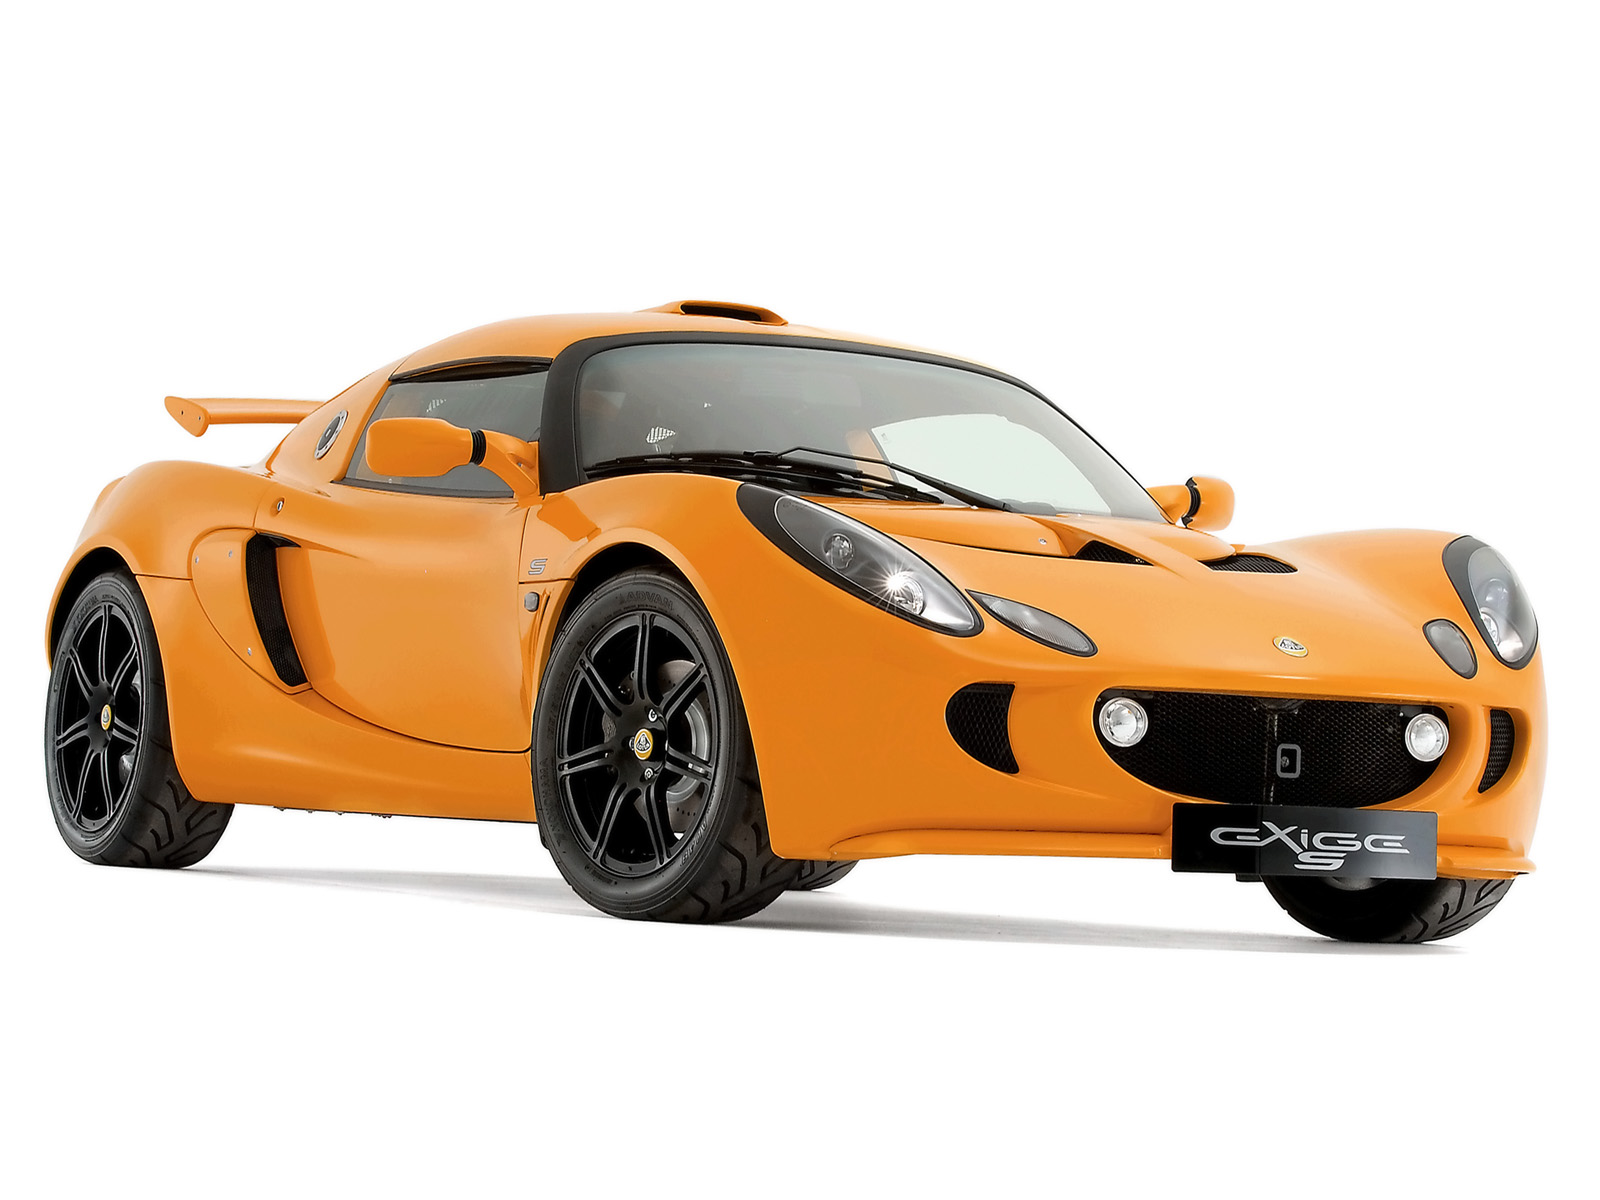 Lotus Exige S High Resolution Wallpaper Free